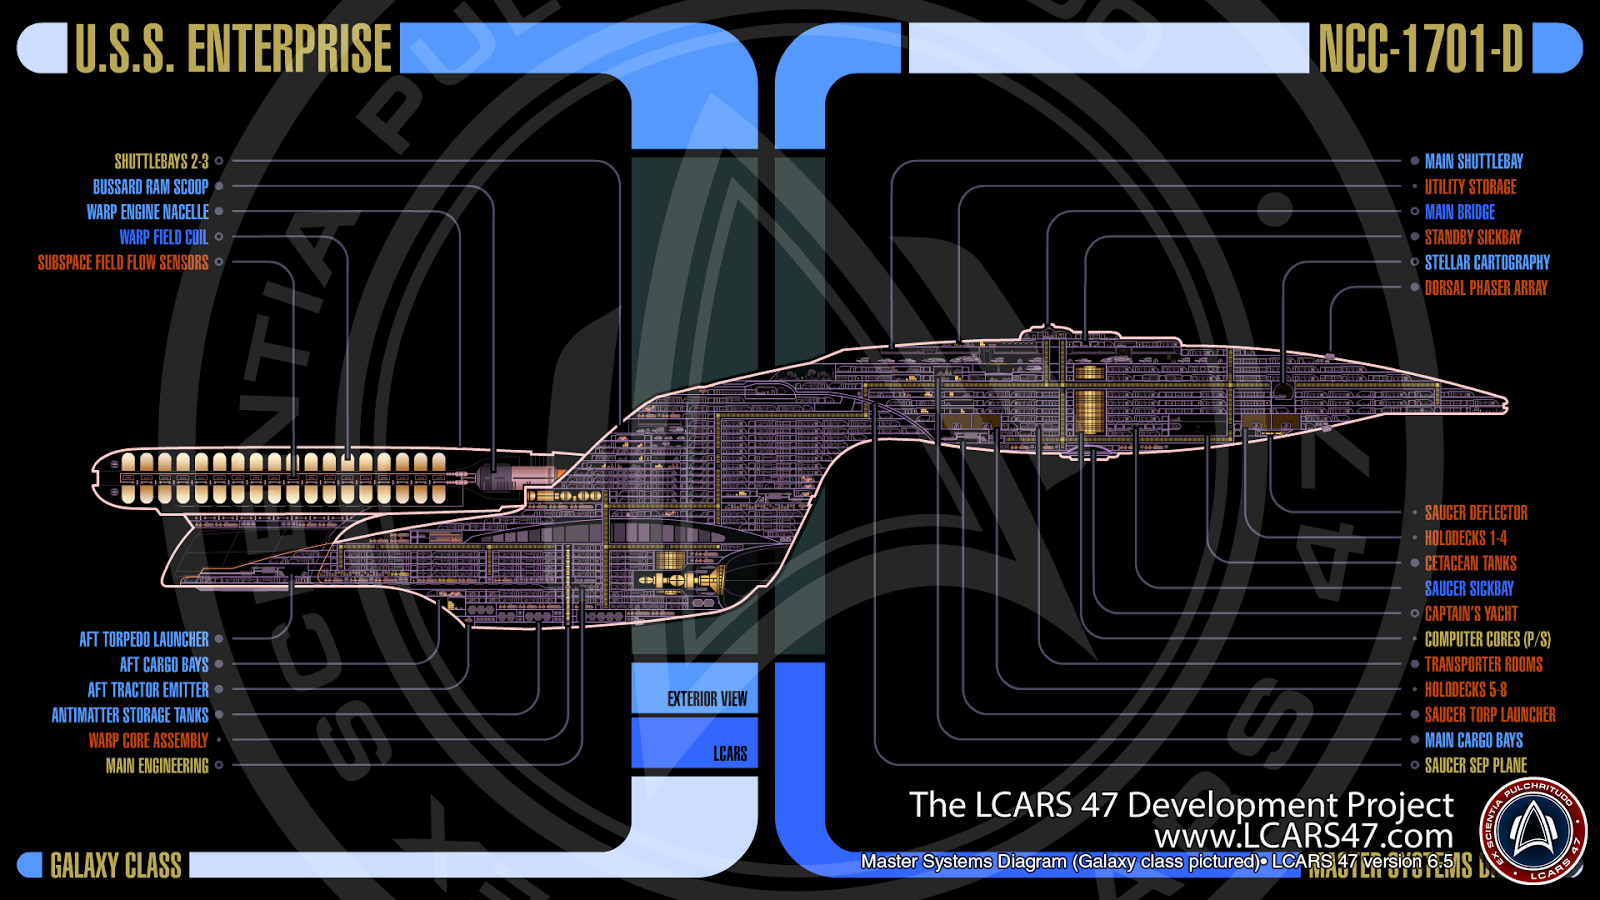 Lcars 47 Master Systems Display And Unique Starship Abilities